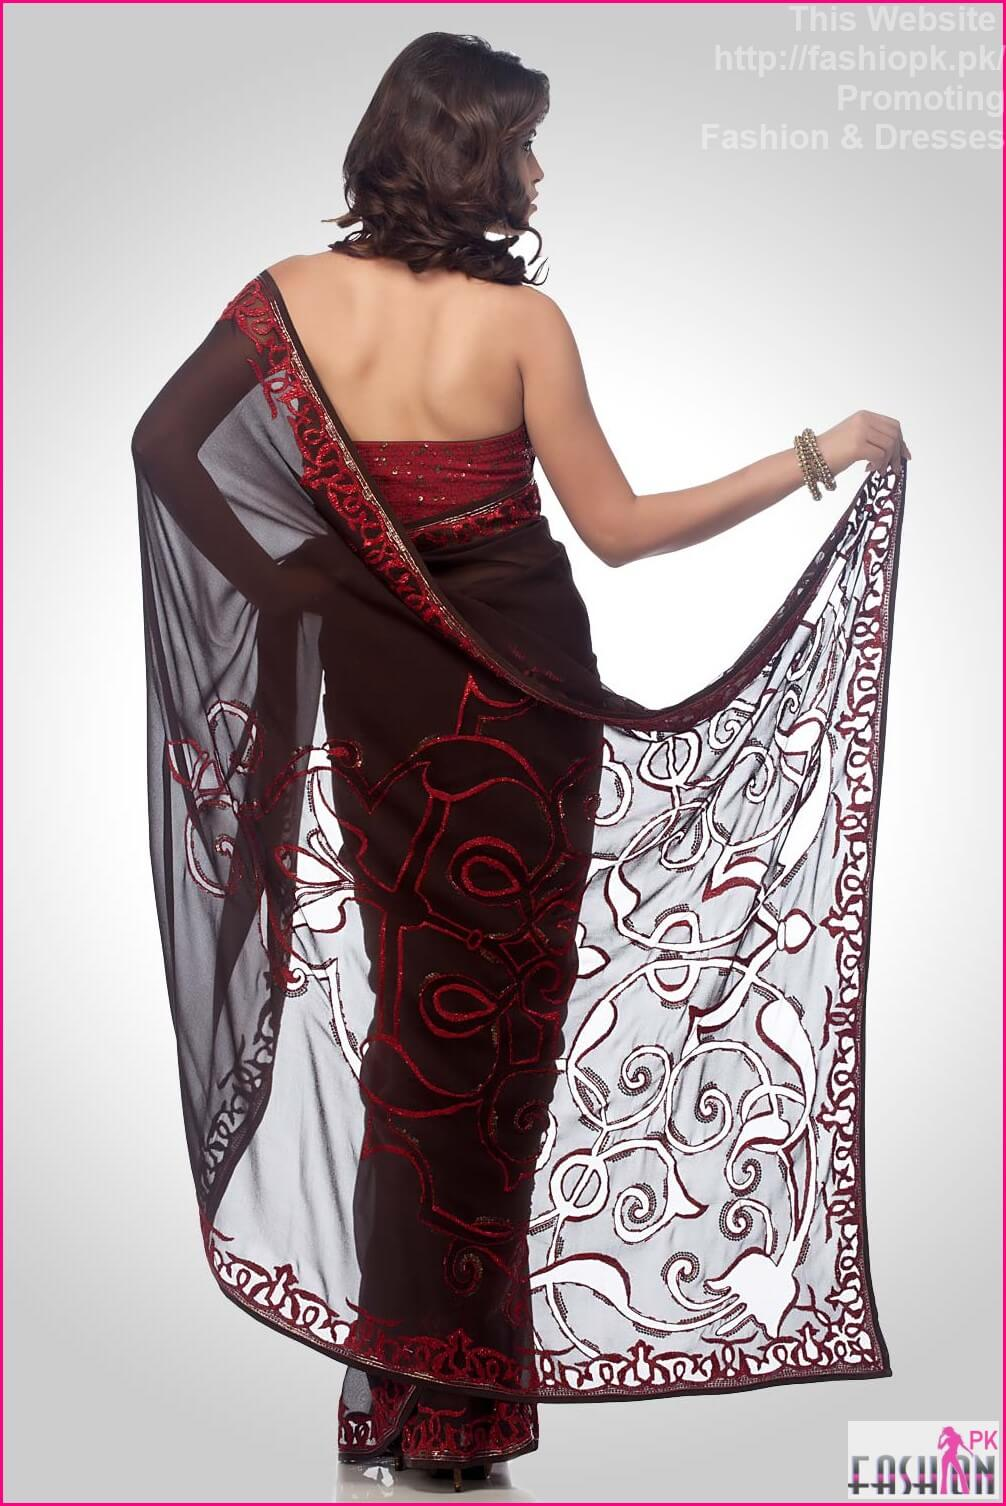 2014 Fashion Dresses In Pakistan New Trend in Sarees